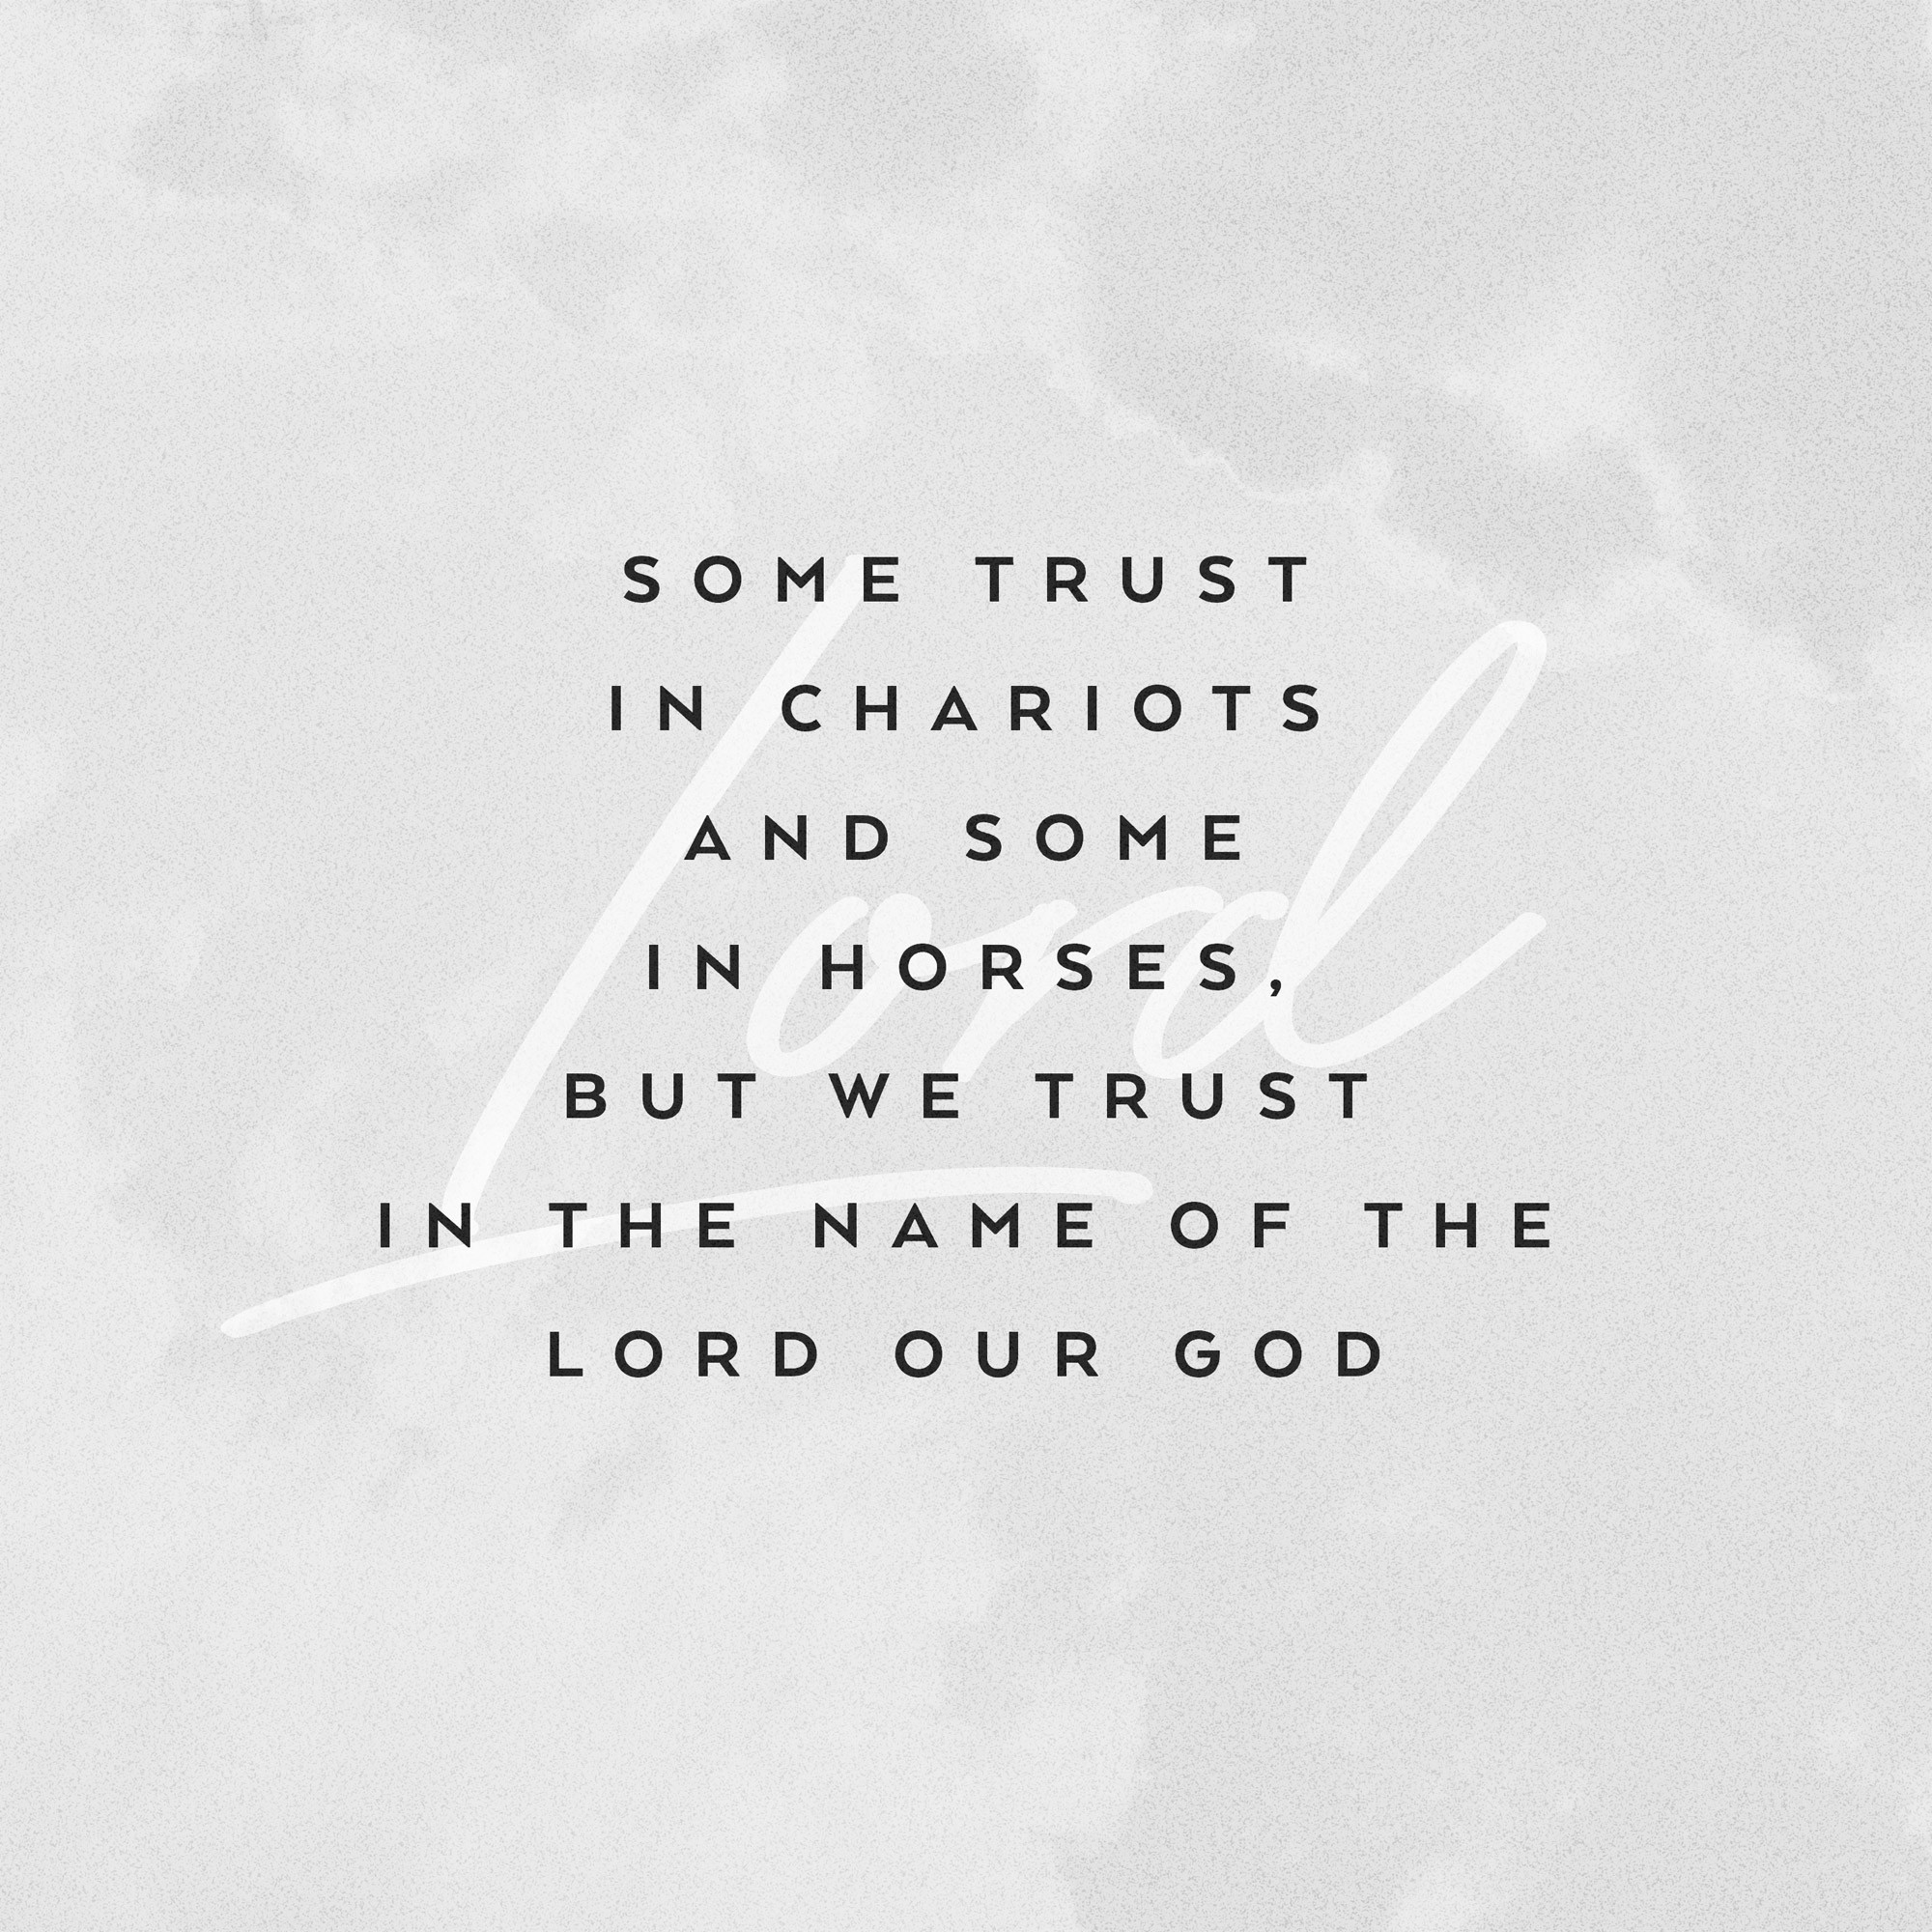 Some trust in chariots and some in horses, but we trust in